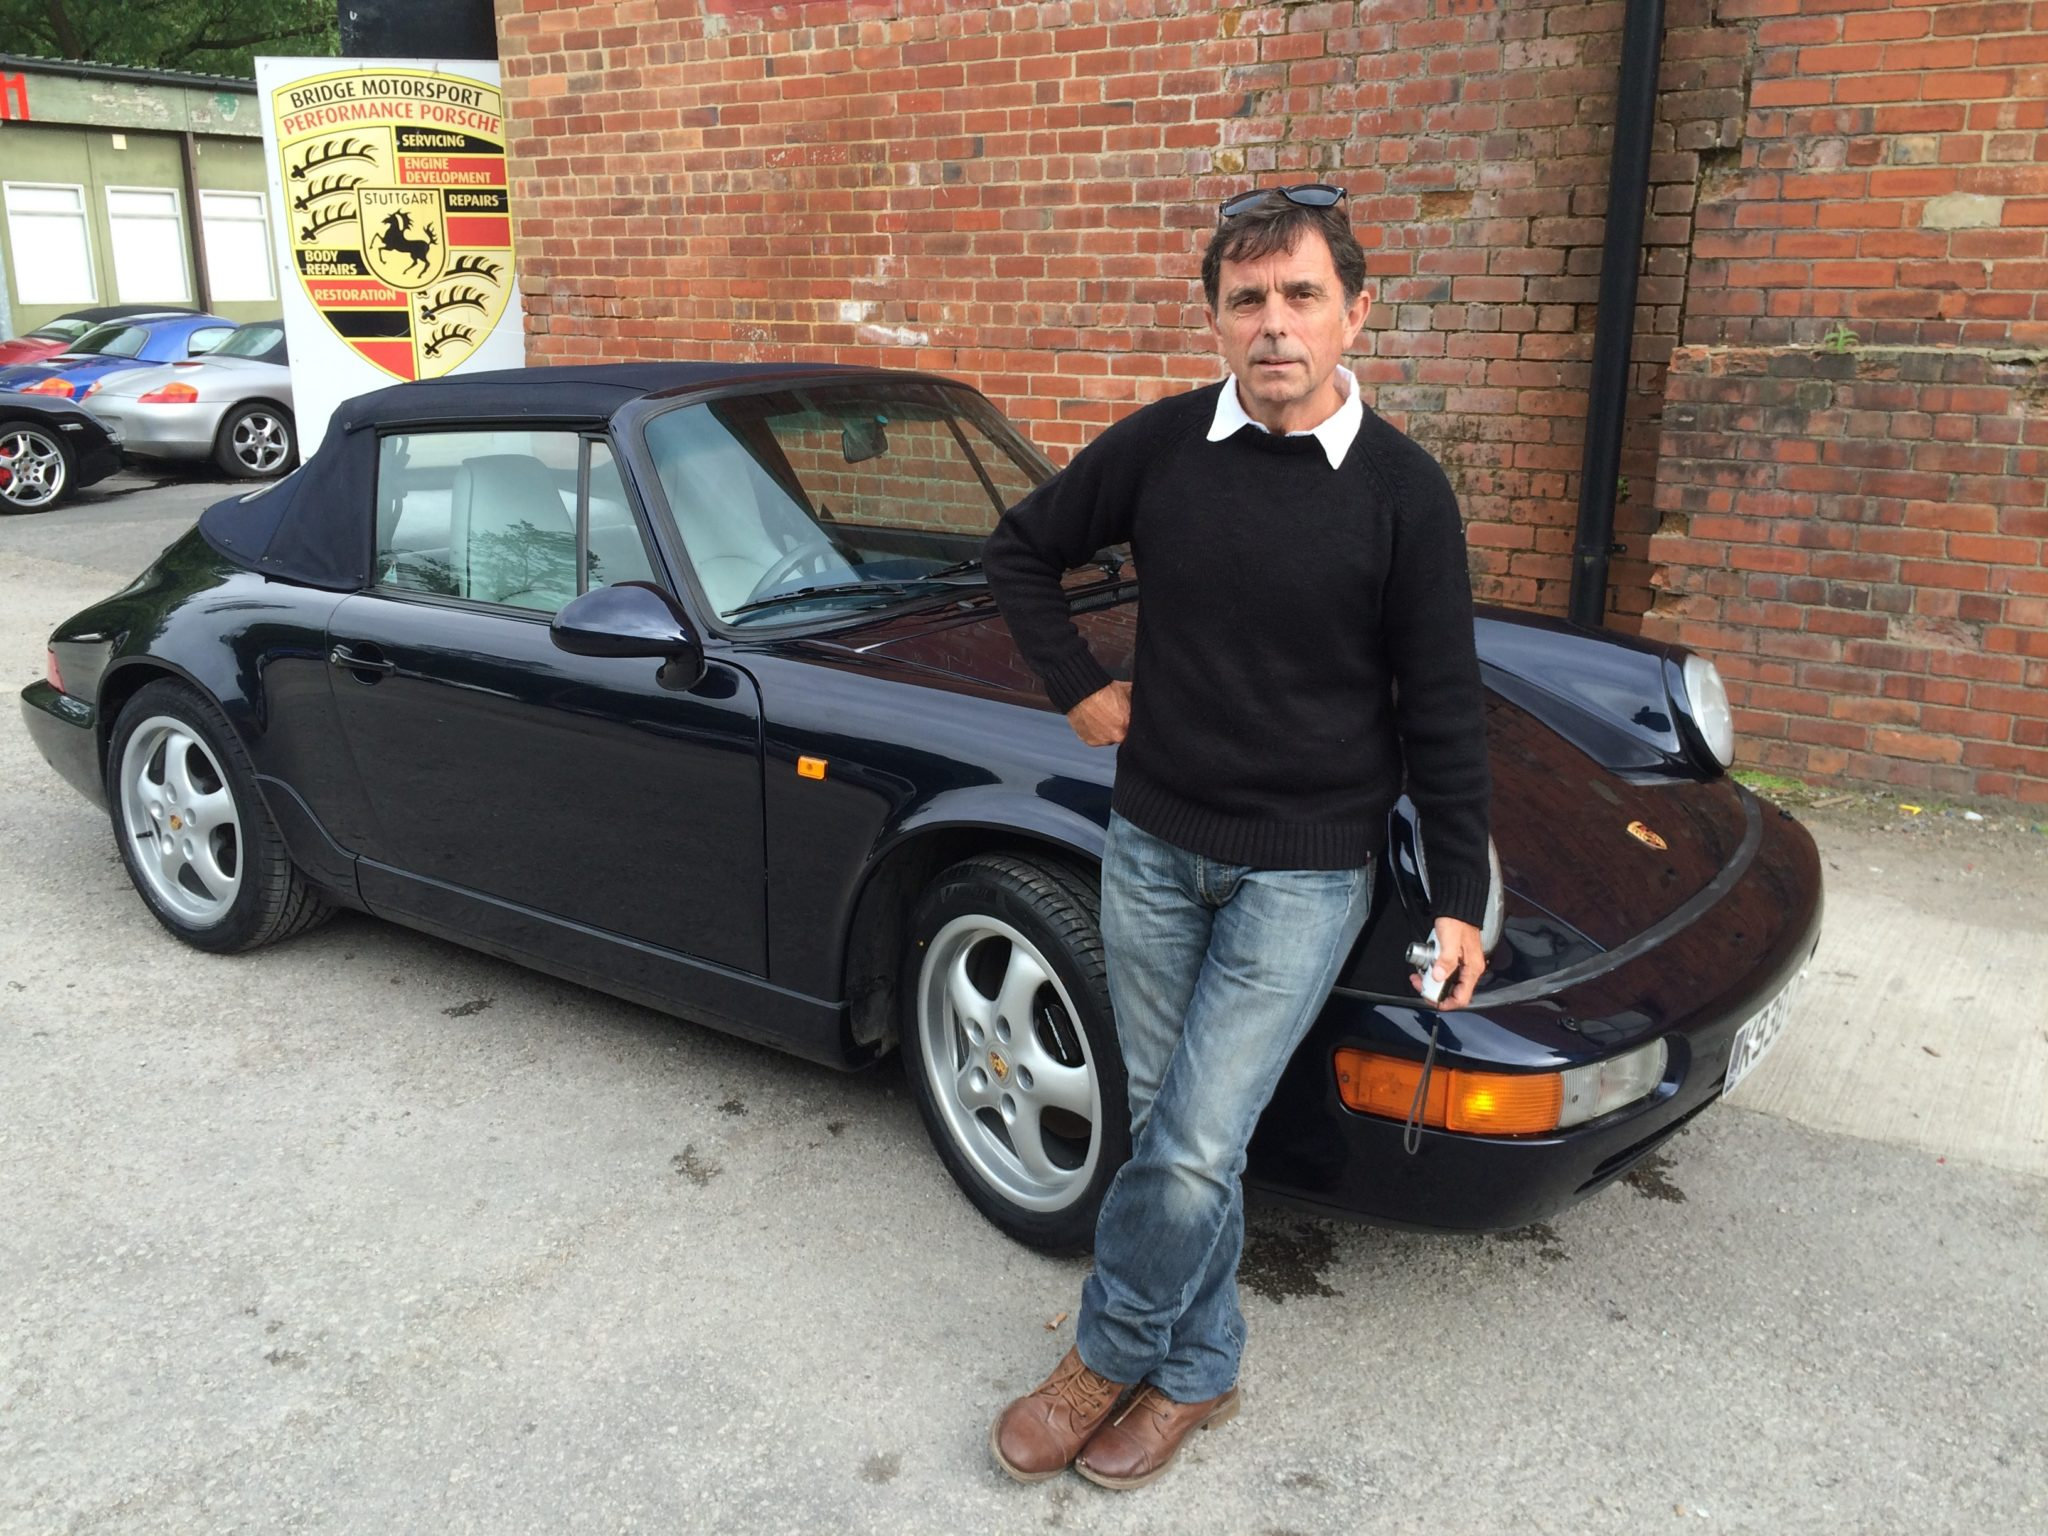 David Completes His 3,400 Mile Round Trip With His Newly Commissioned 964 Cabriolet